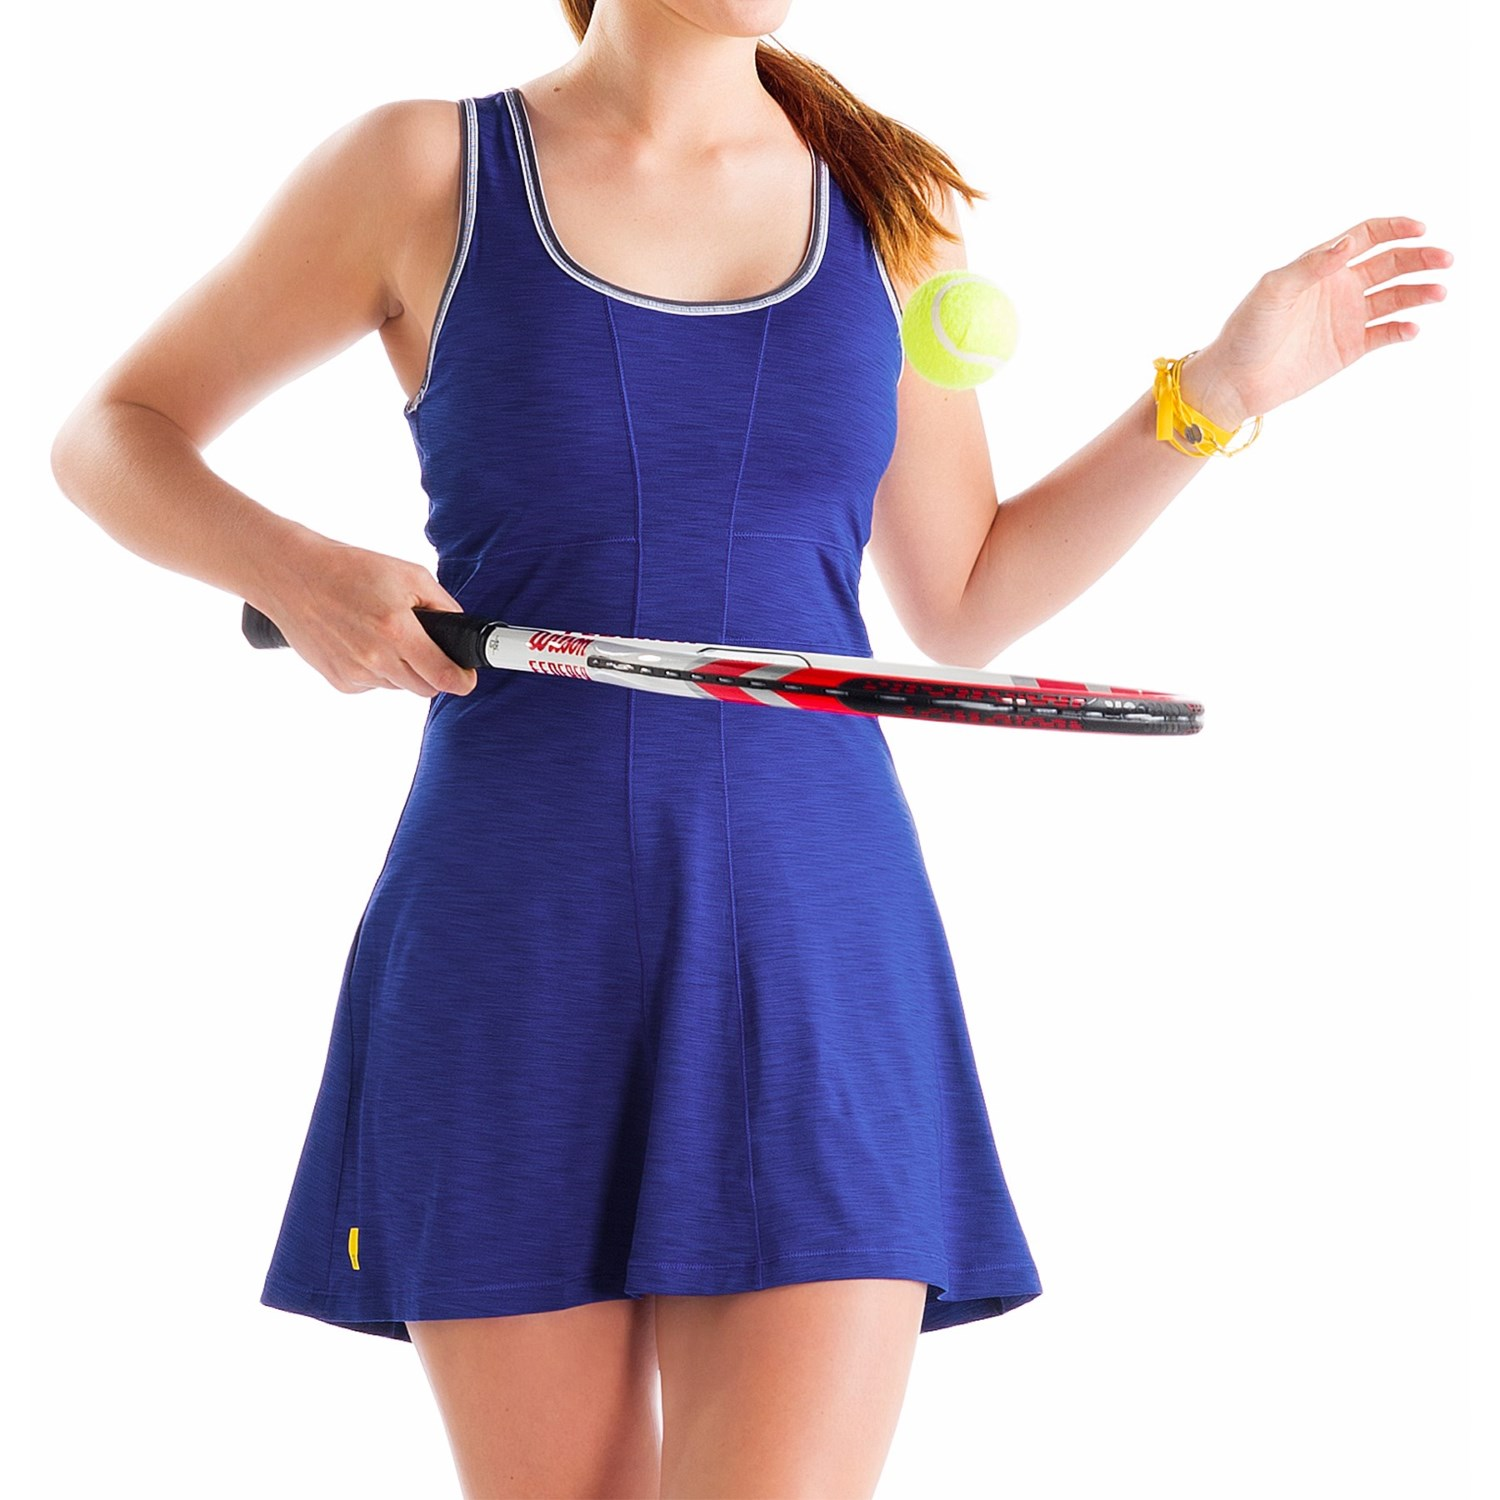 Women Tennis Dresses | Dress images